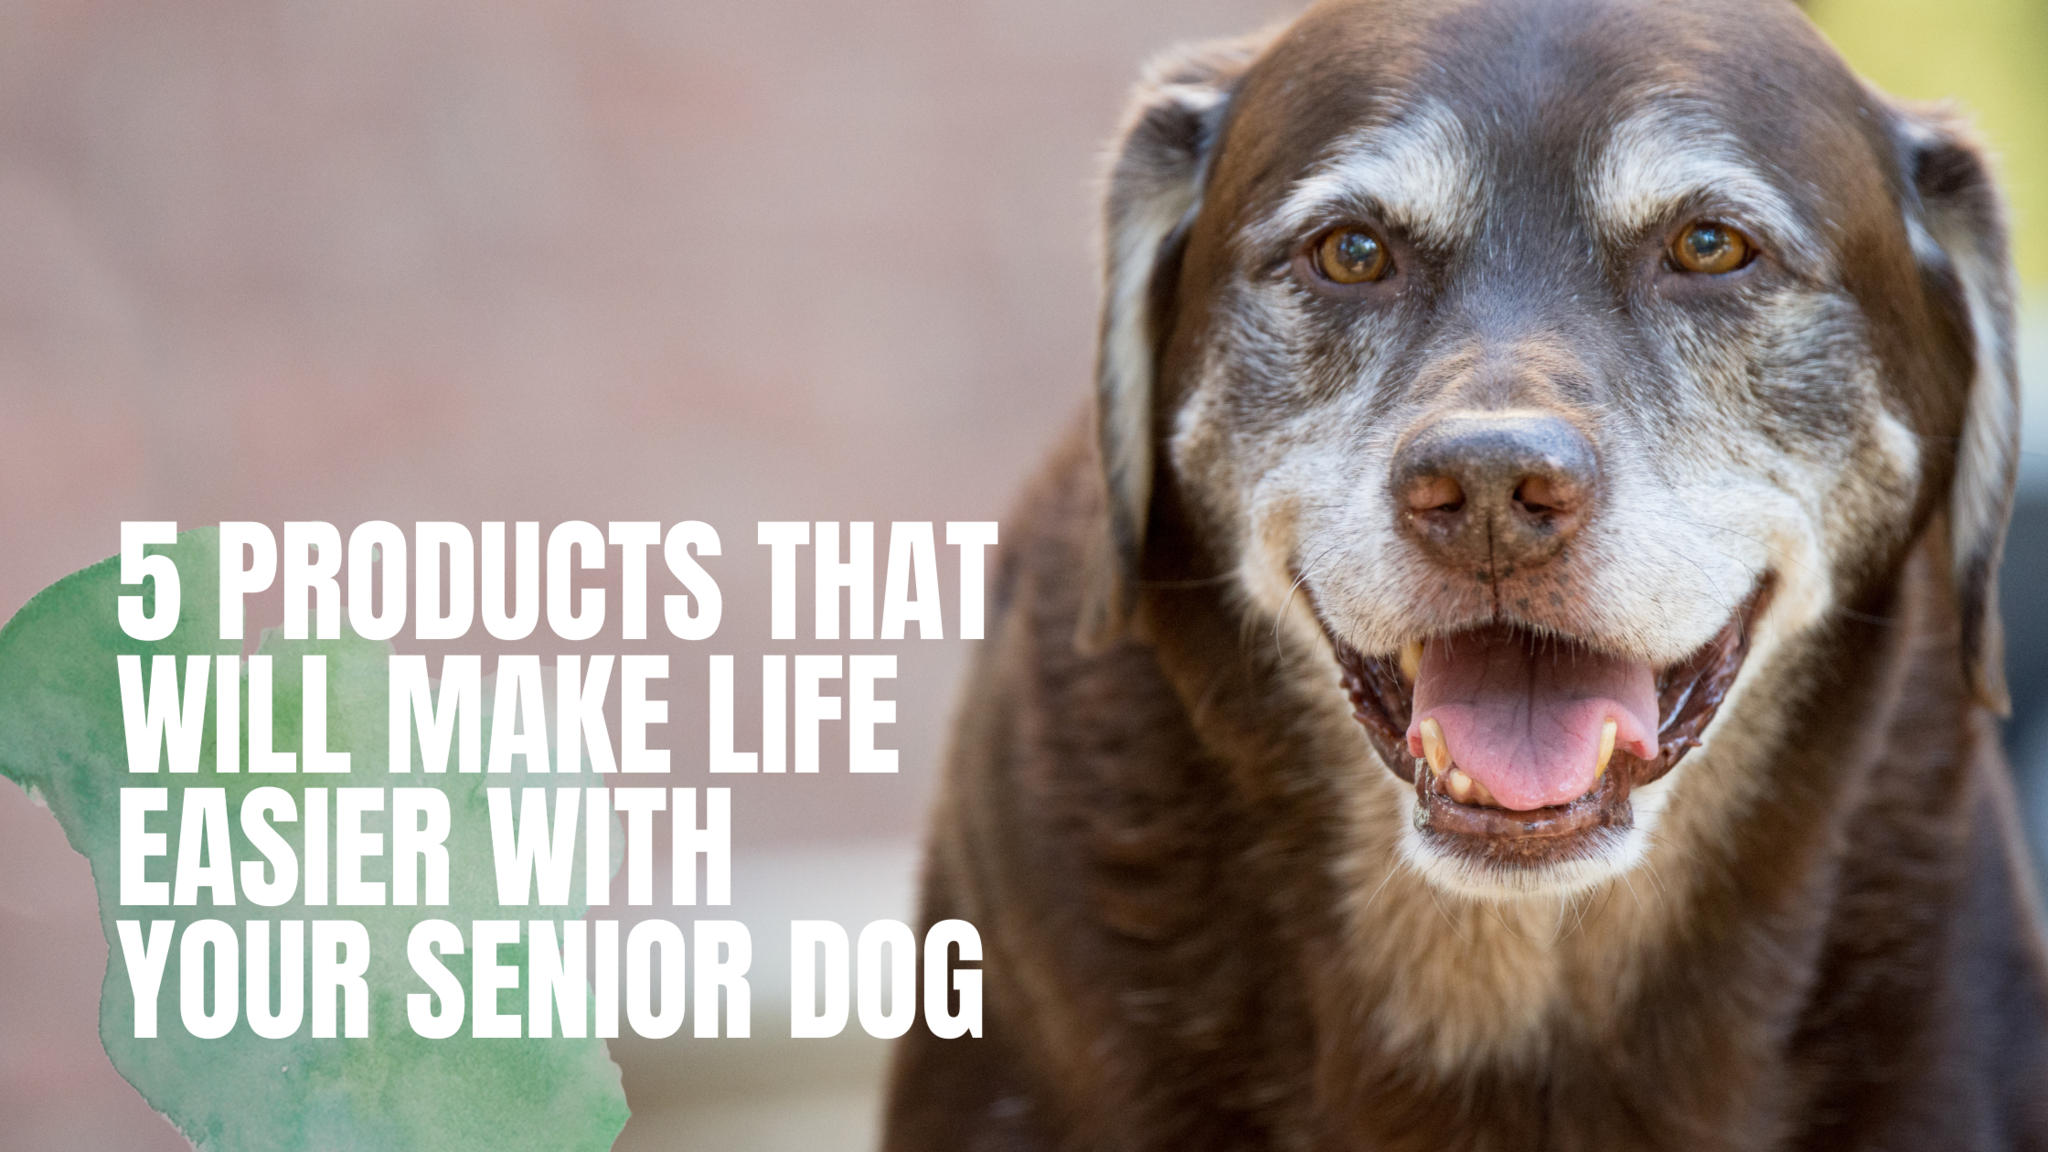 5 products that will make life easier with your senior dog